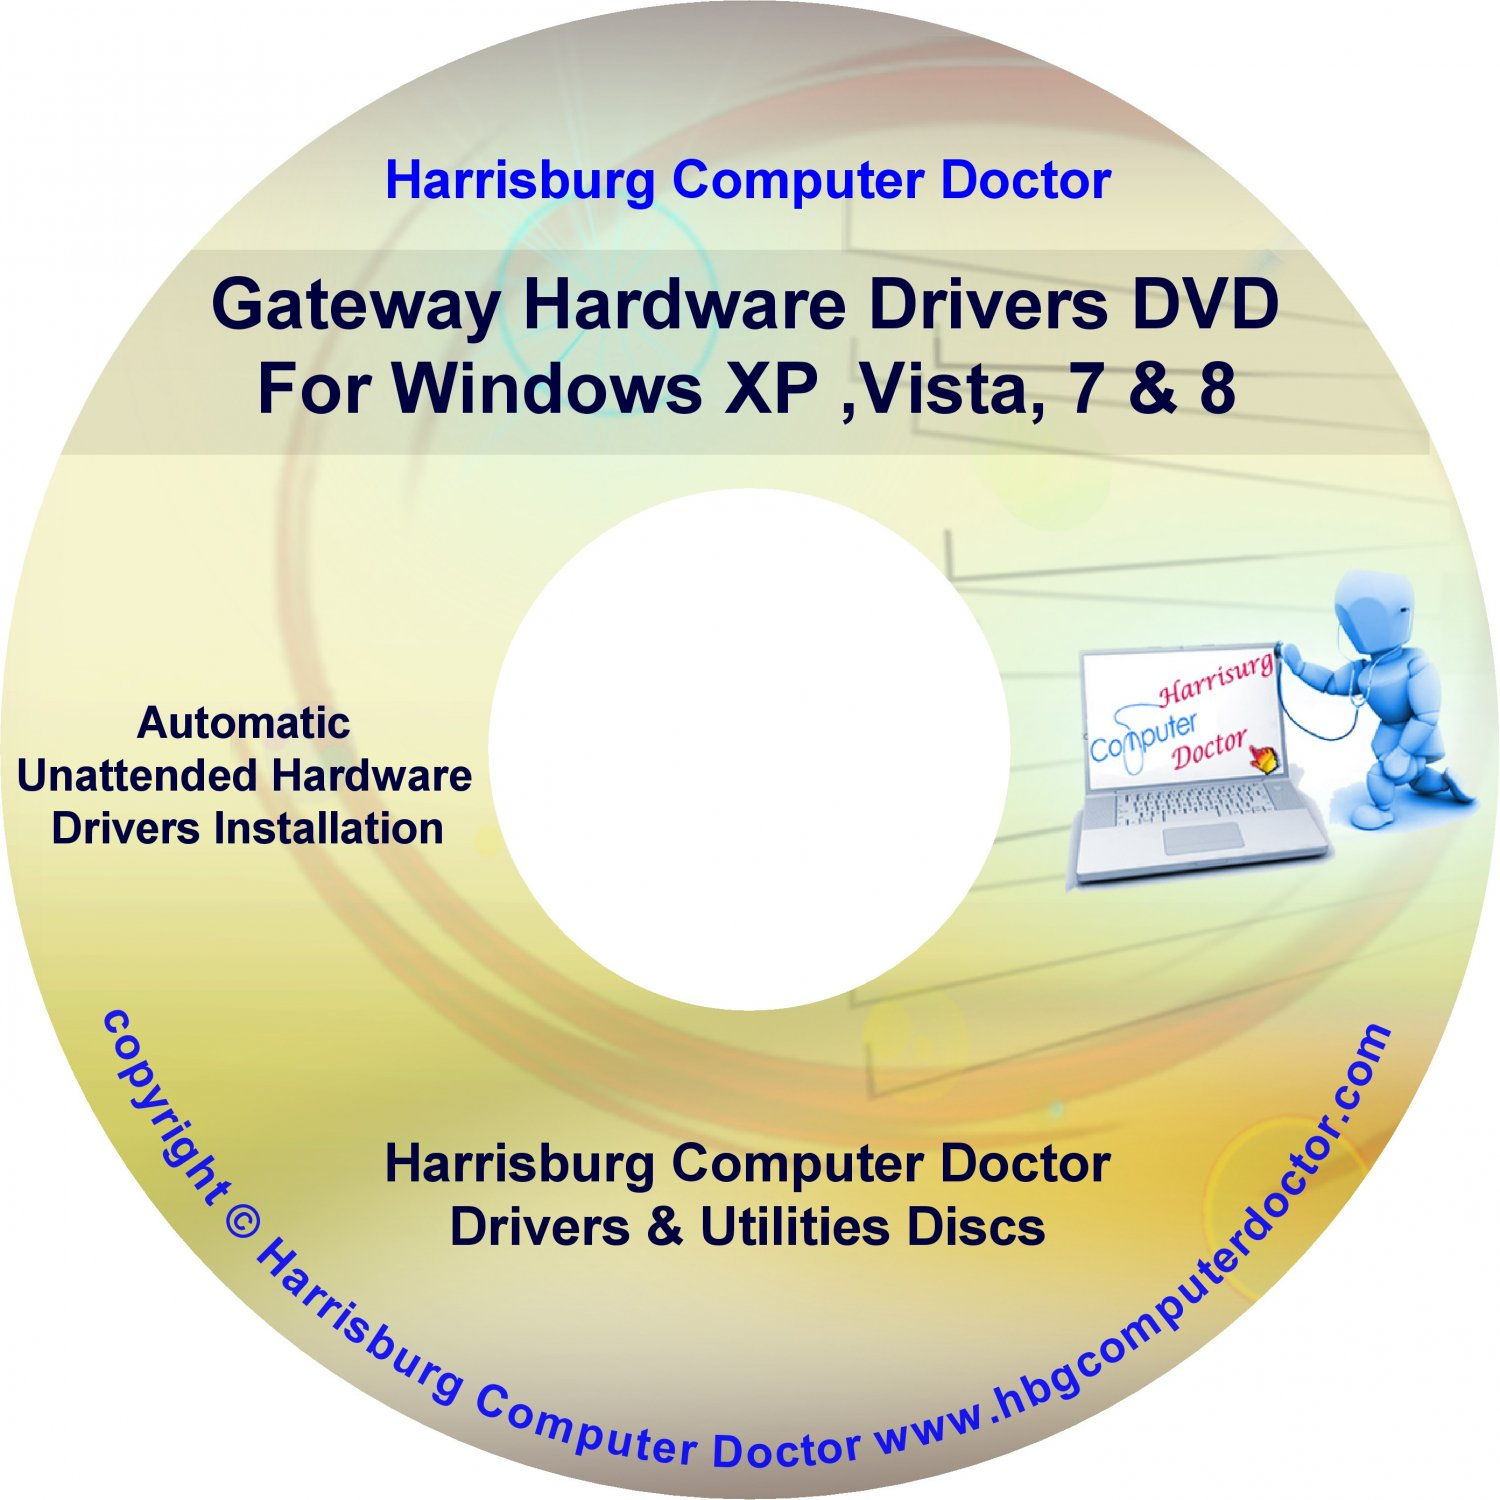 Gateway GT5030j Drivers DVD For Windows, XP, Vista, 7 & 8